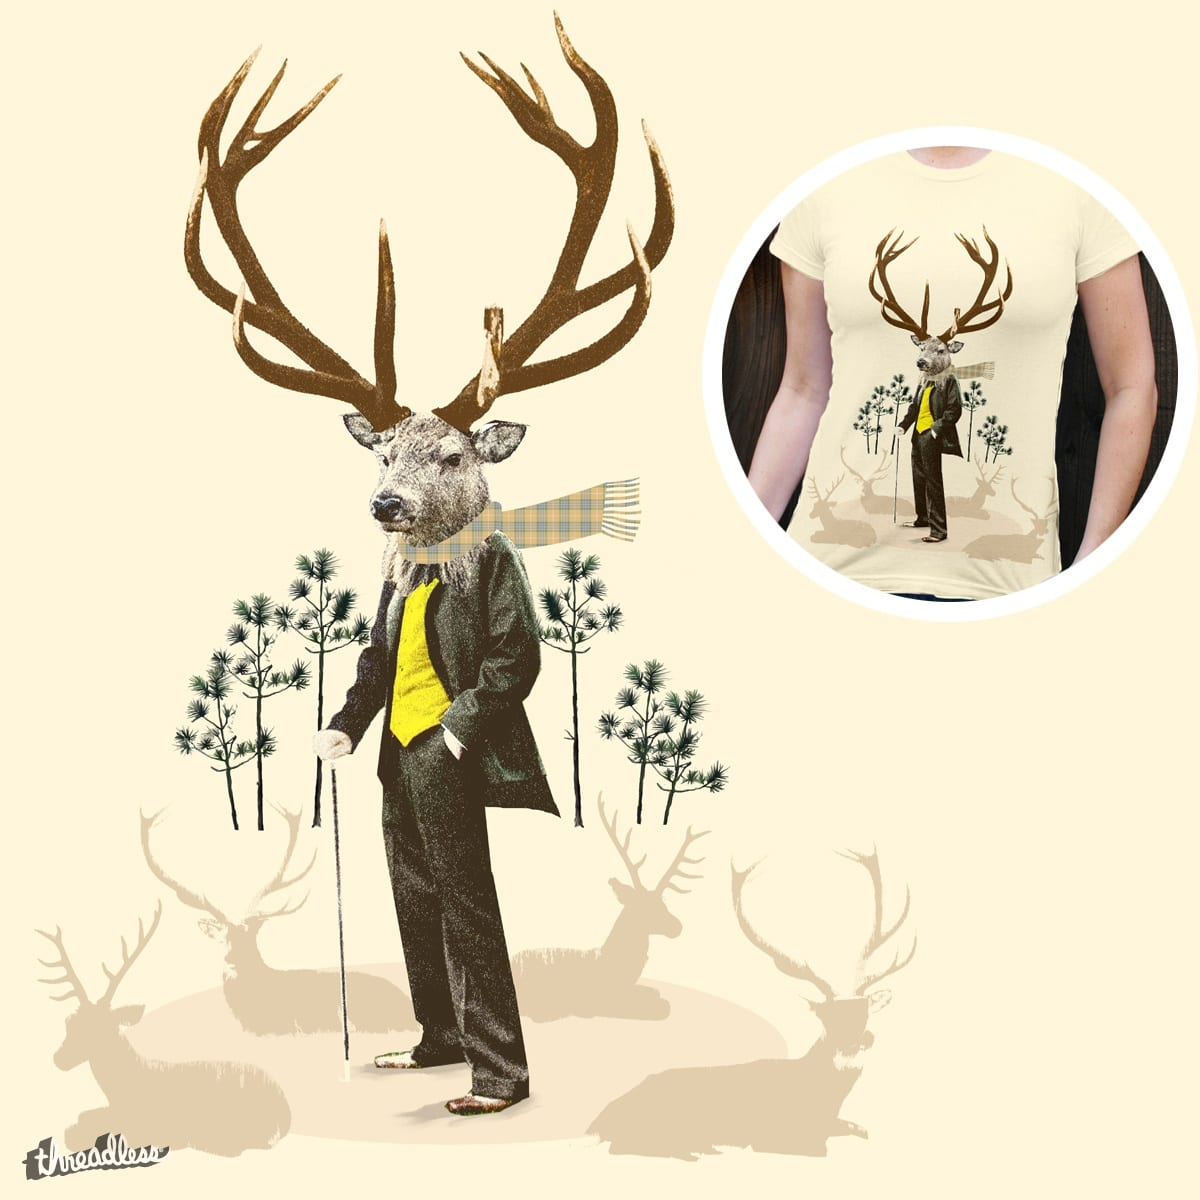 King stag by lev man on Threadless